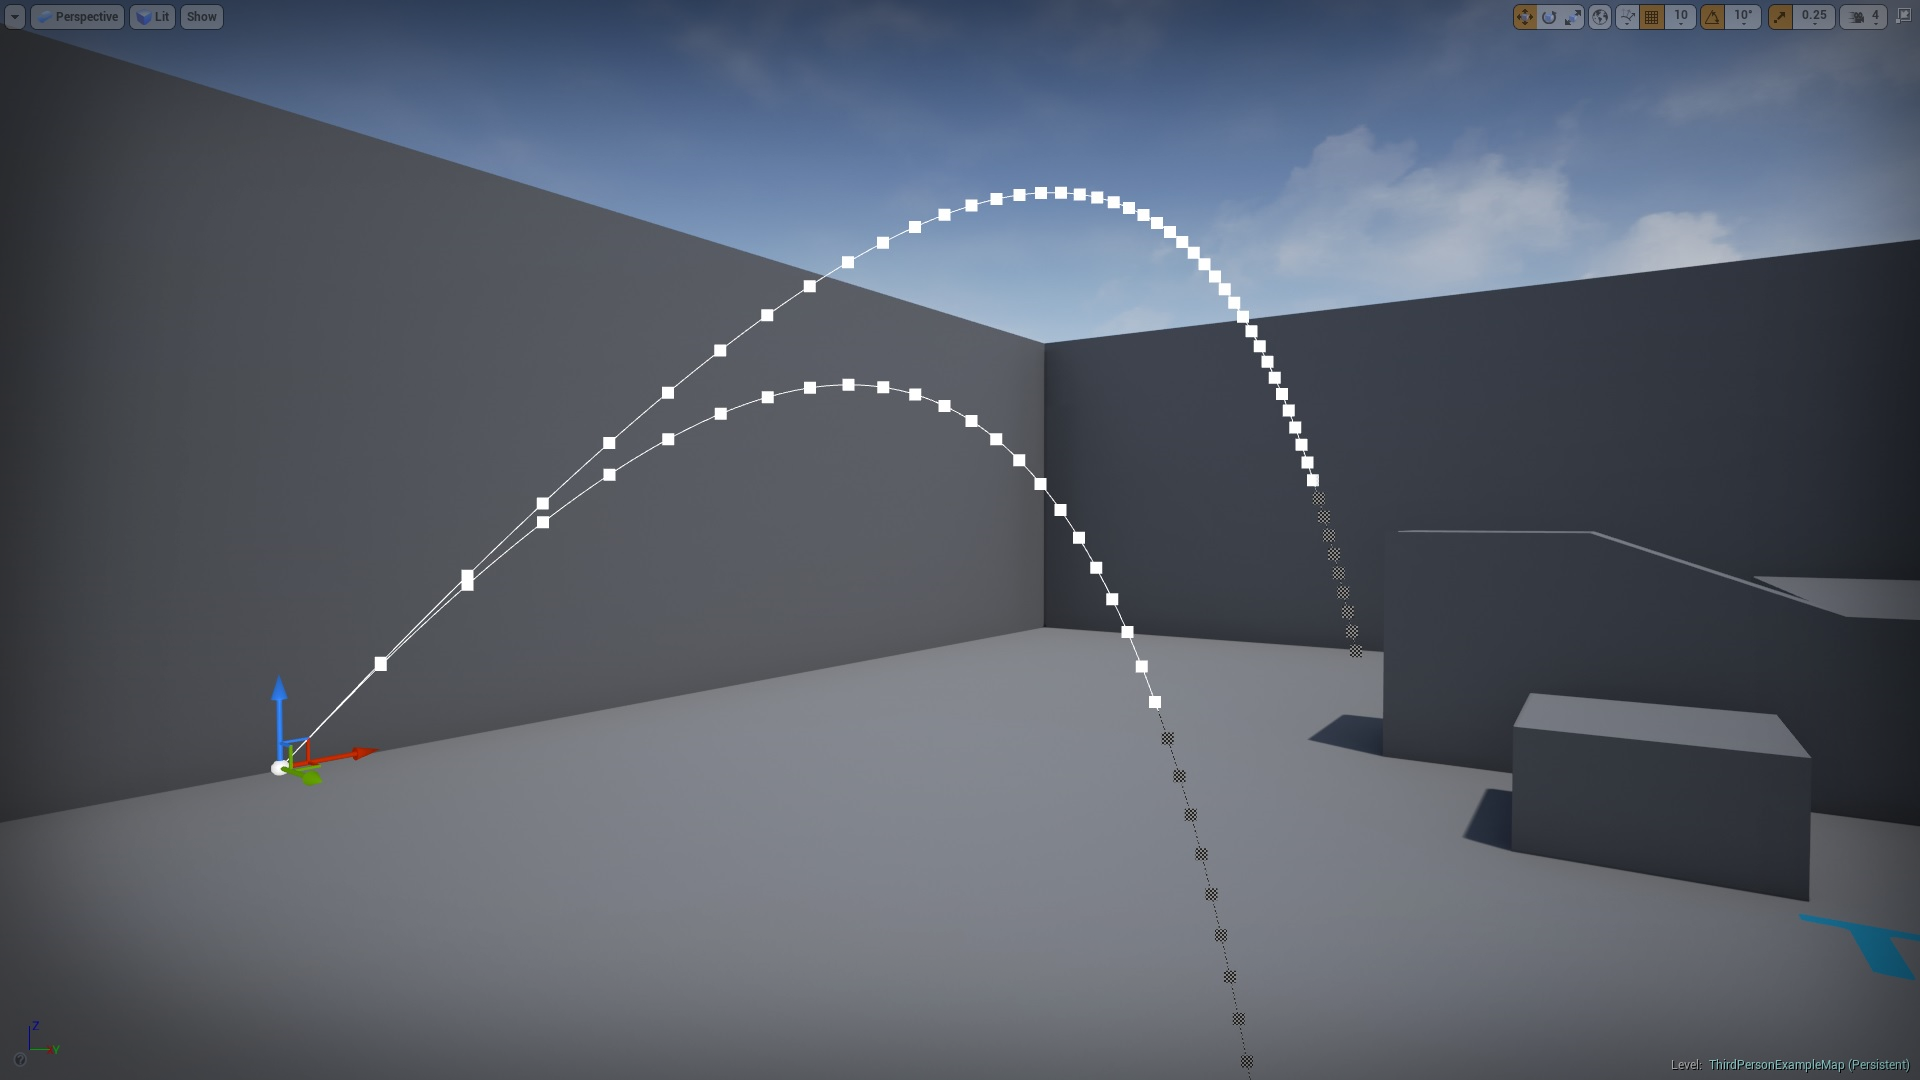 Physics-based projectiles by Valmin Miranda in Blueprints - UE4